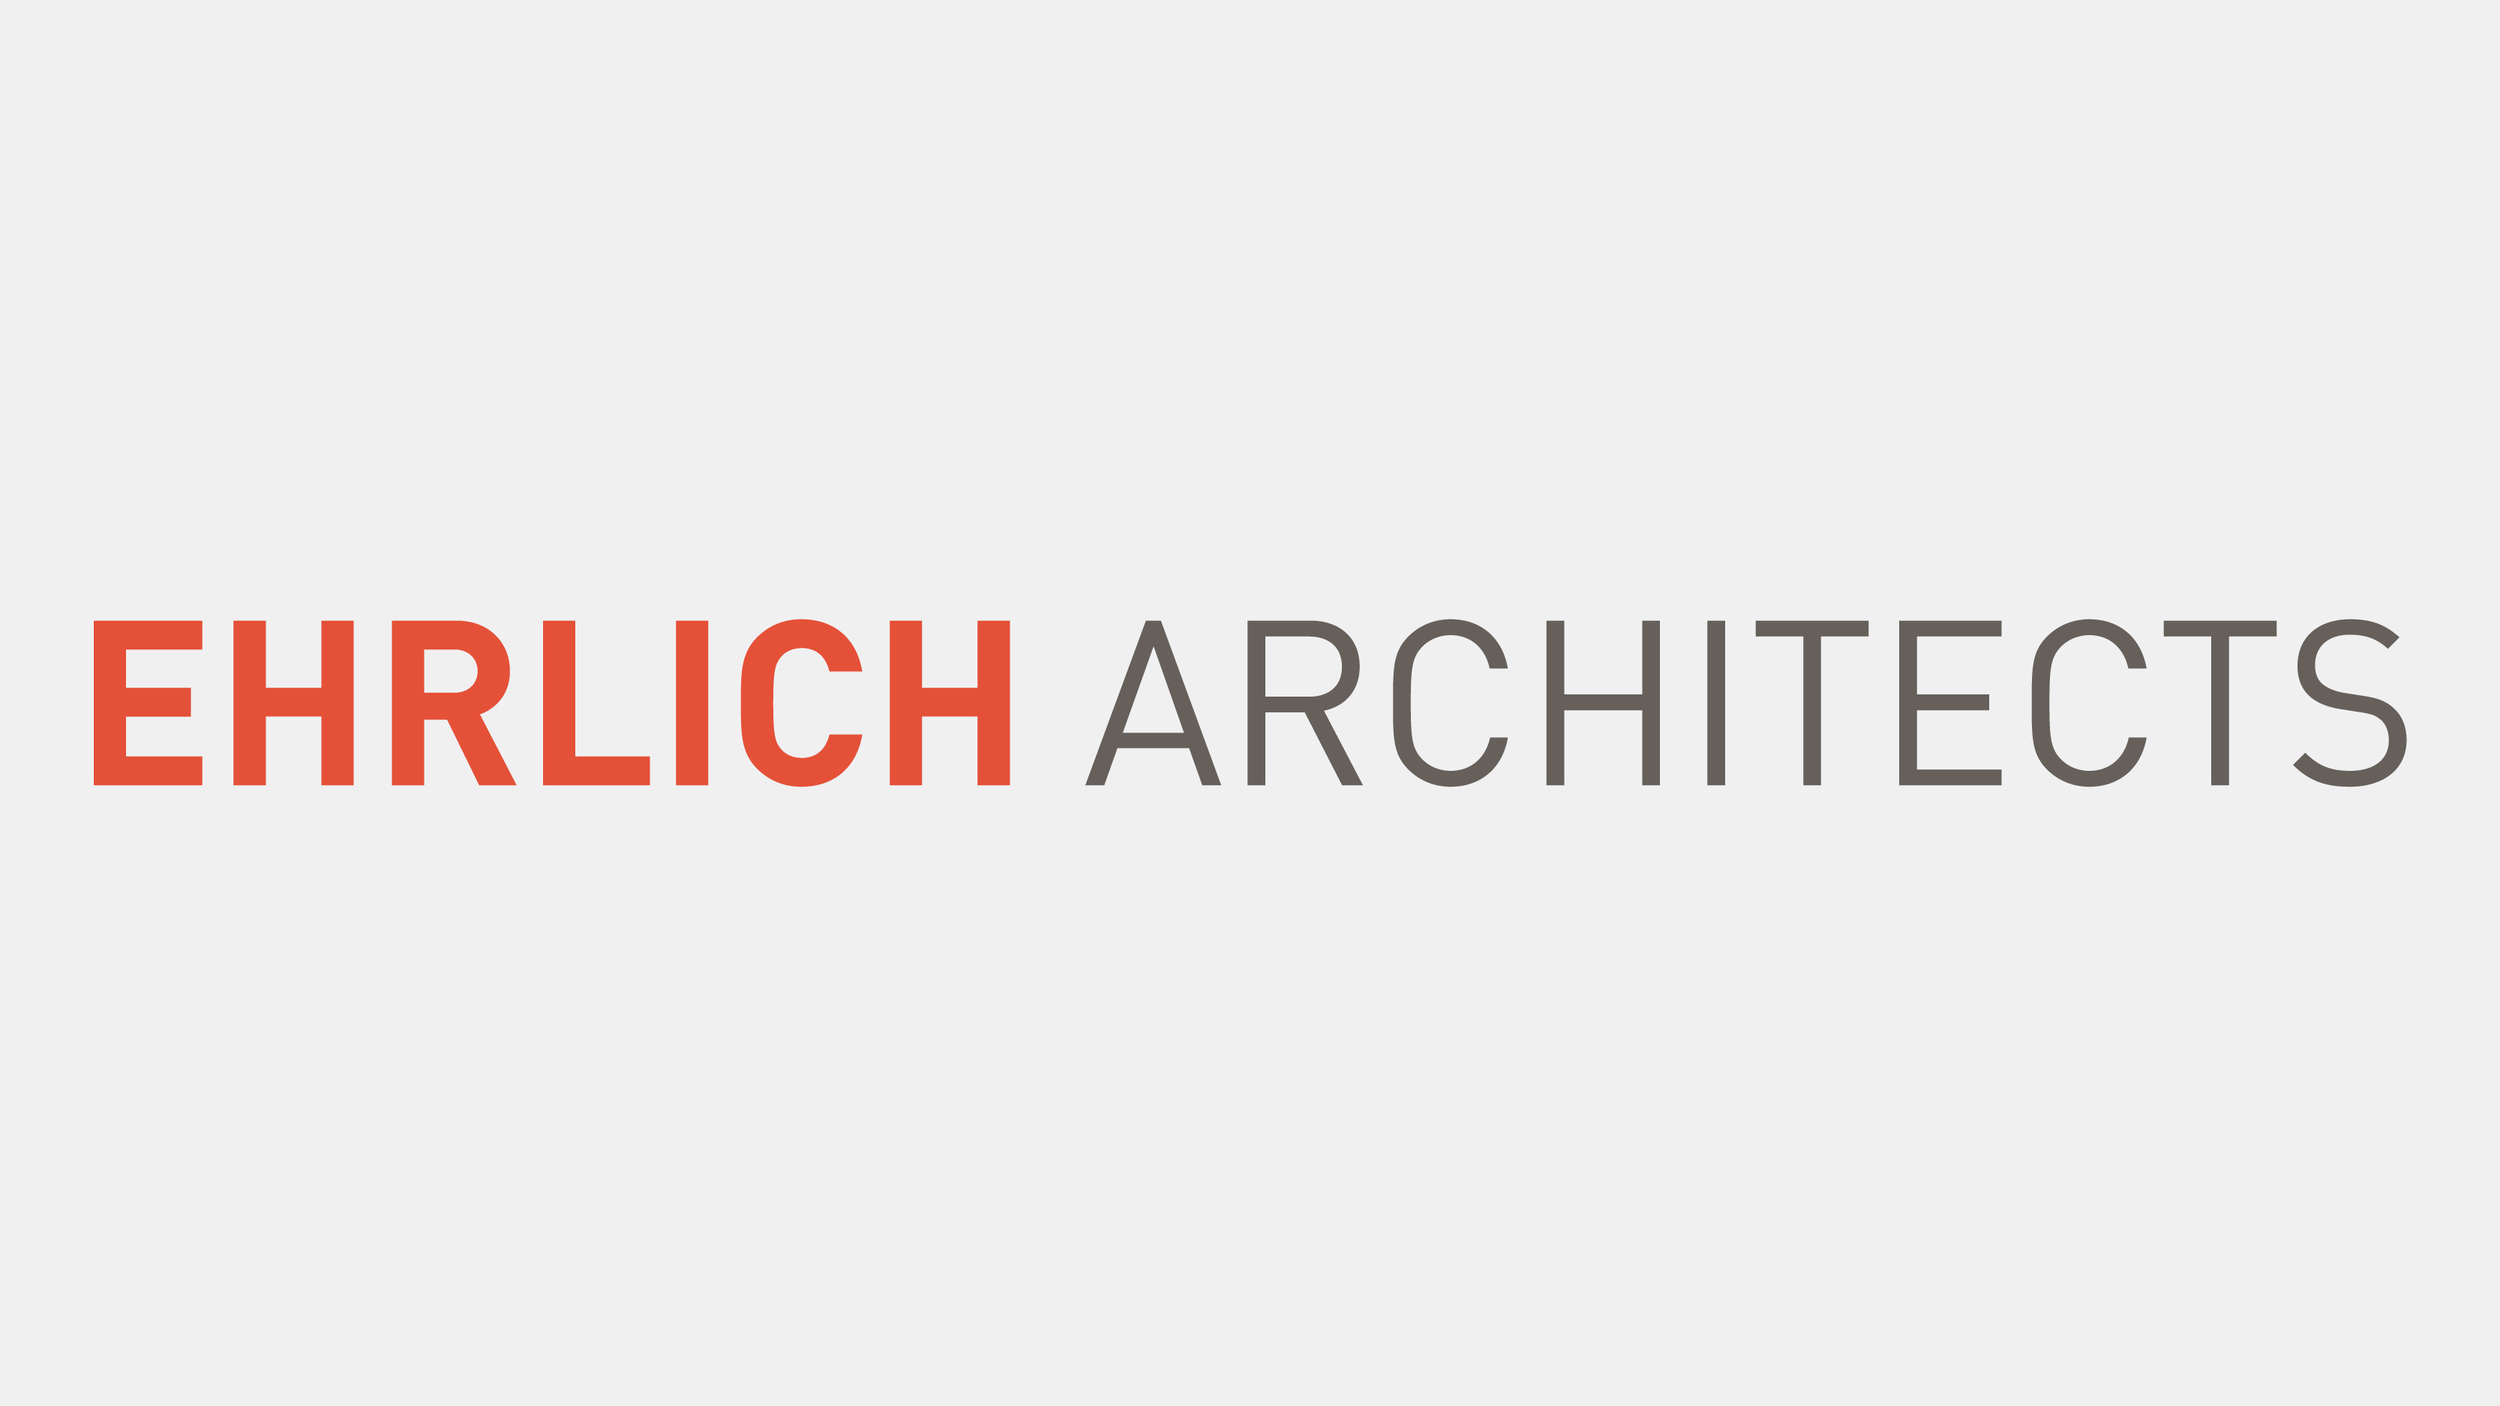 Erlich Architects